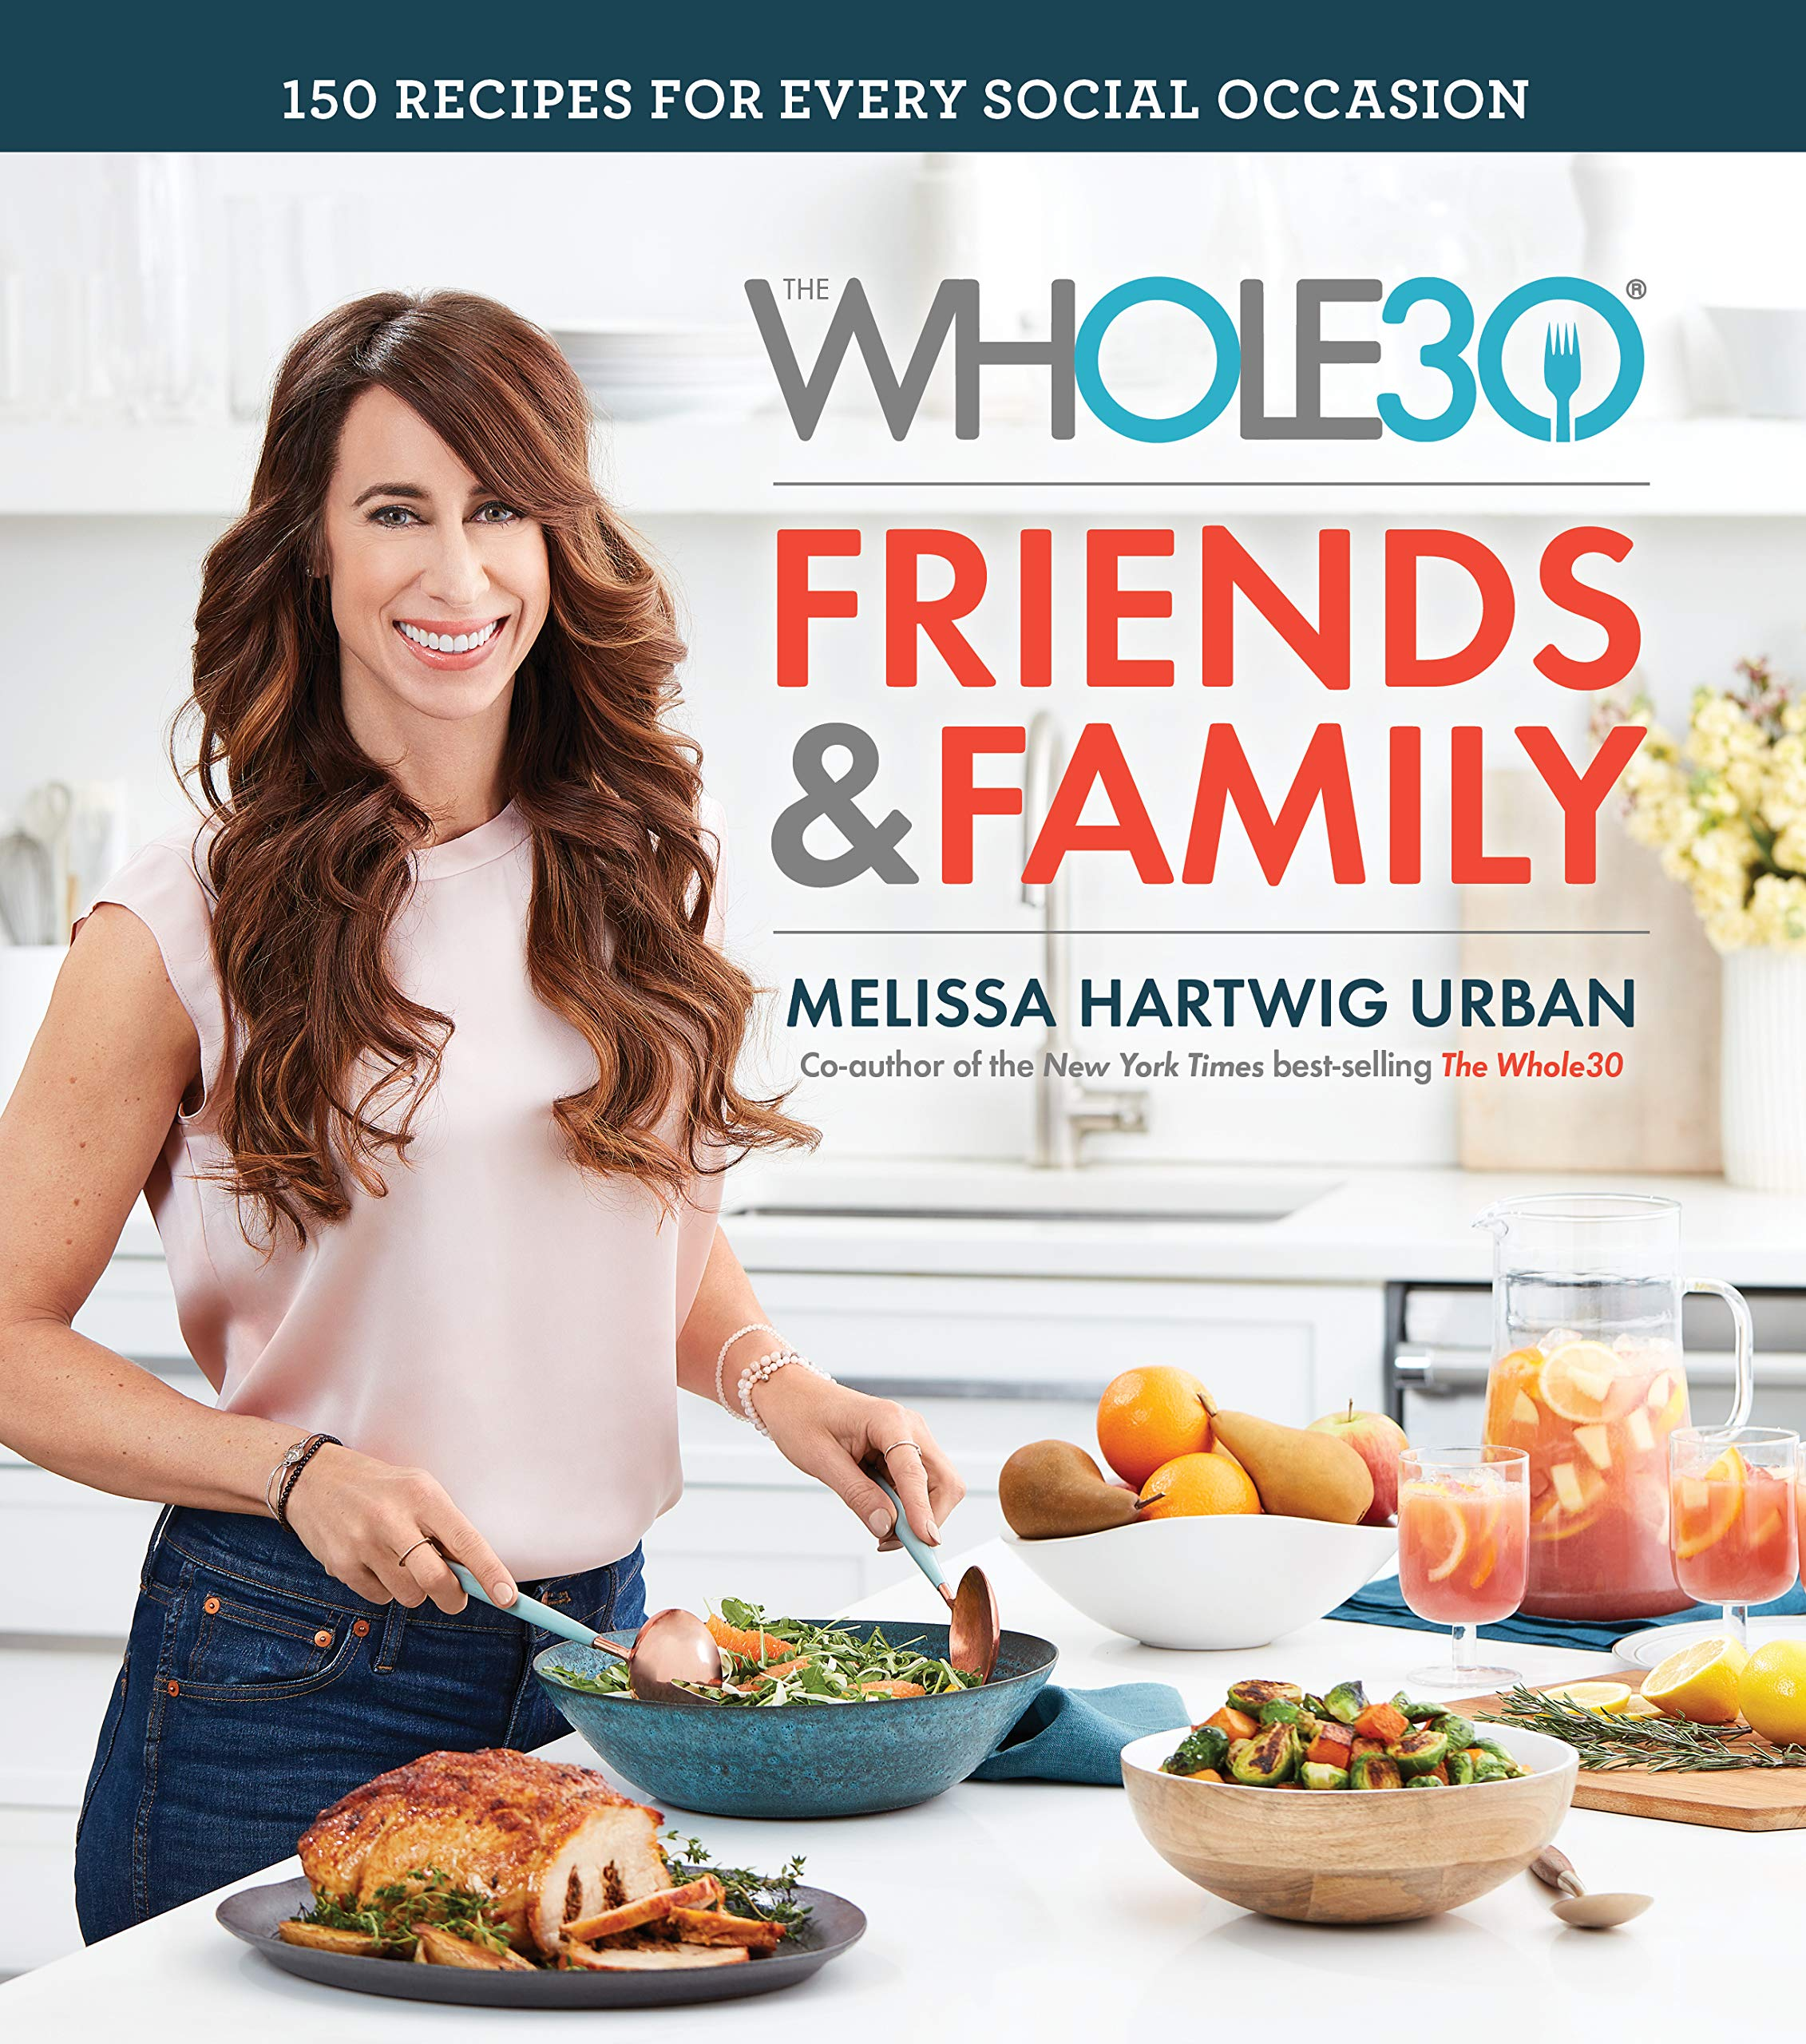 Image OfThe Whole30 Friends & Family: 150 Recipes For Every Social Occasion